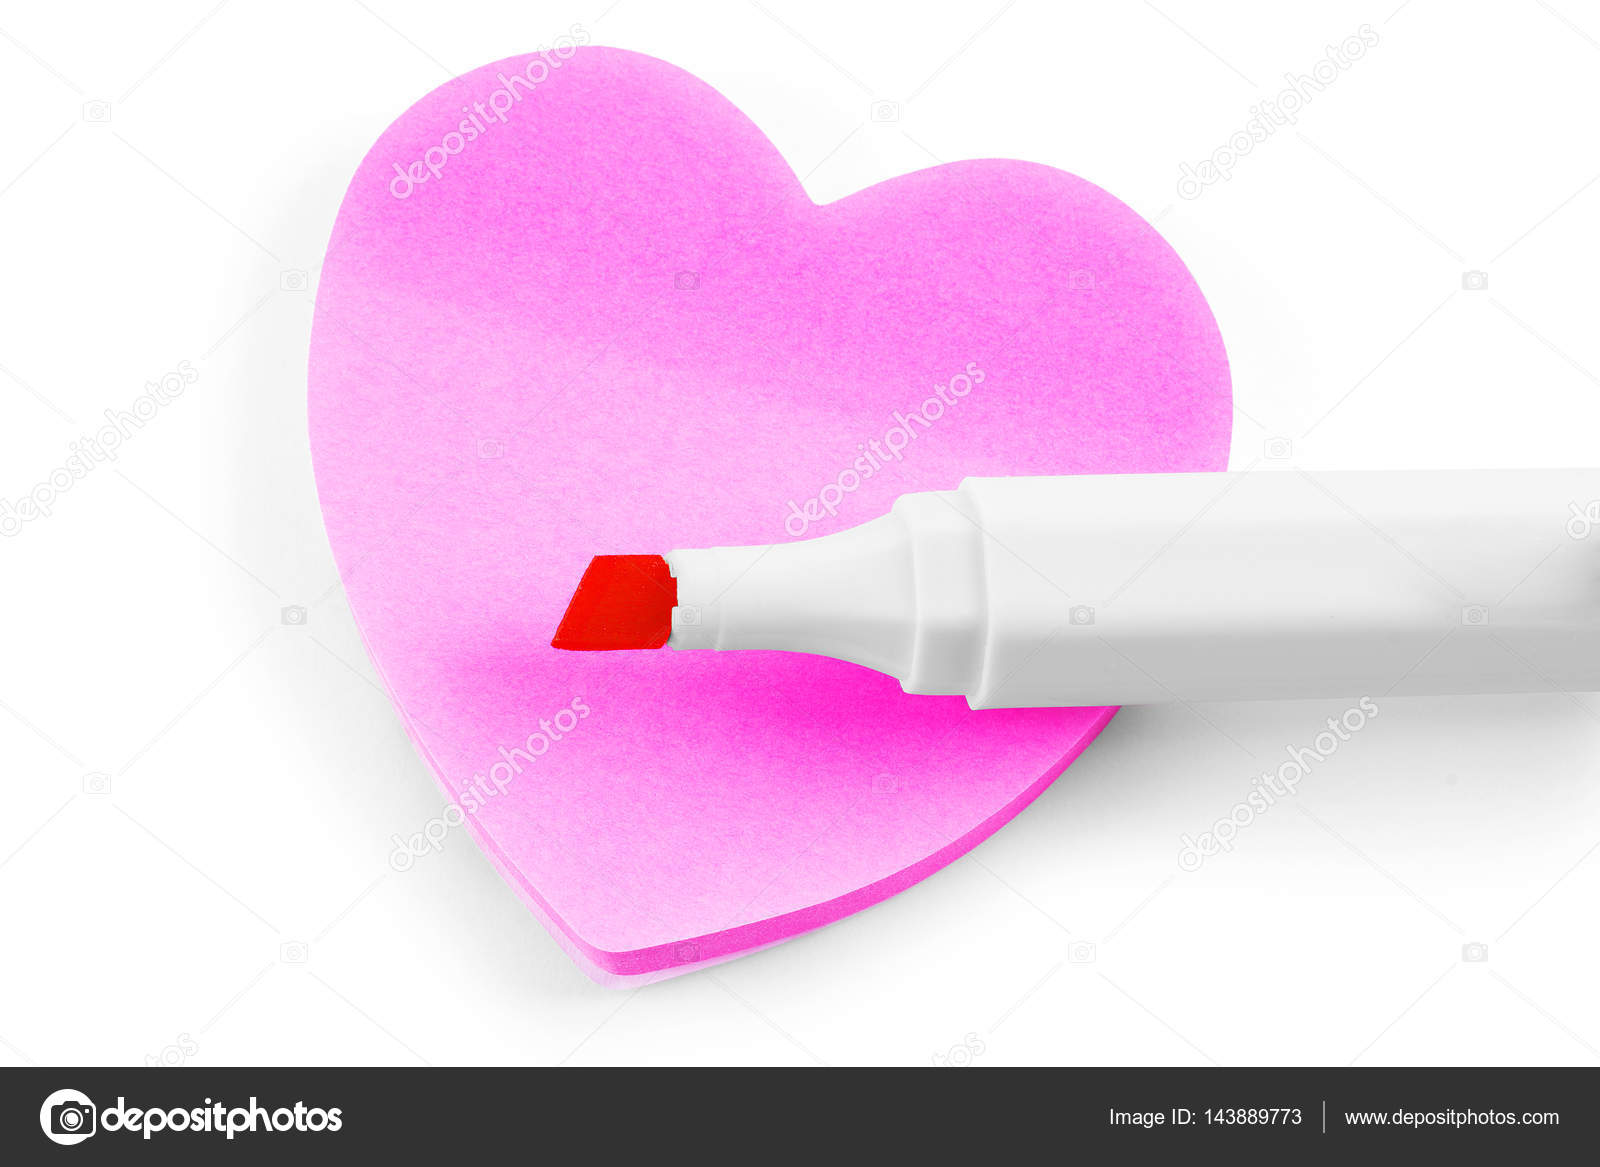 colorful sticky note heart shape stock photo vadarshop 143889773